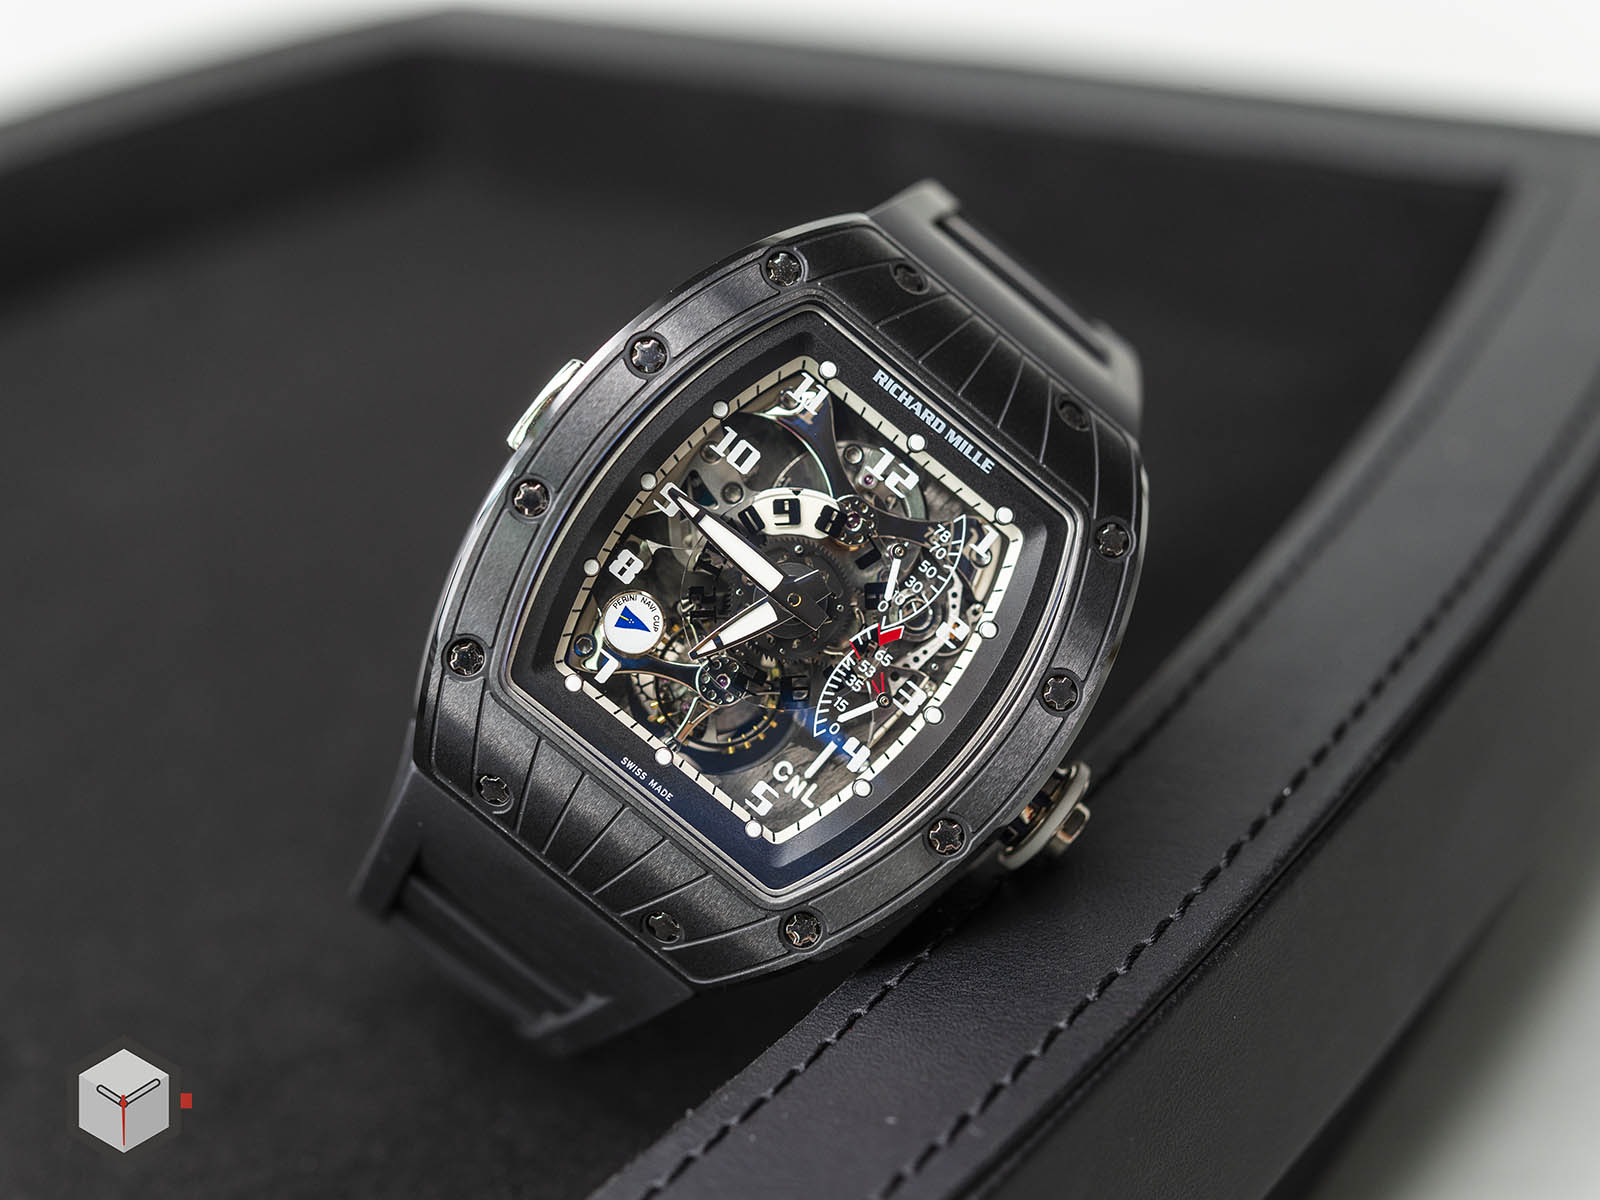 richard-mille-rm015-tourbillon-dual-time-zone-perini-navi-cup-.jpg